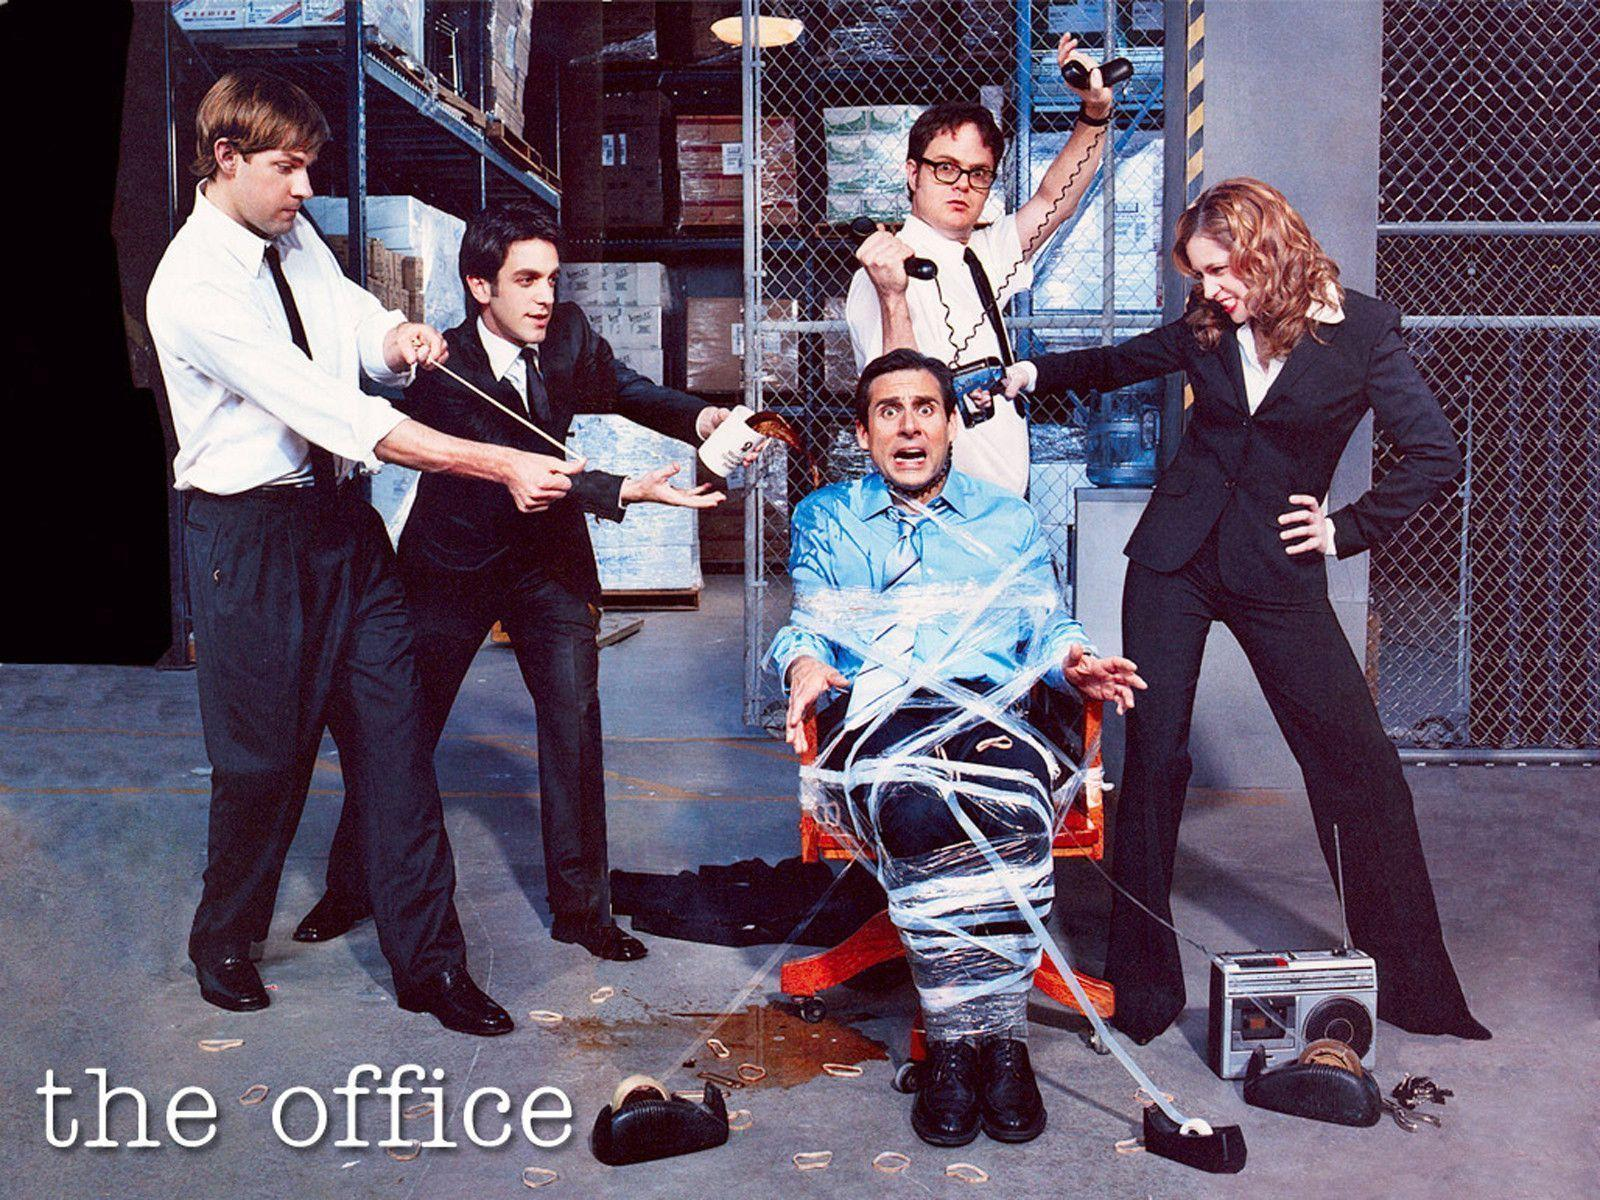 The Office (US) Wallpaper 19 | Free HD Wallpaper Desktop